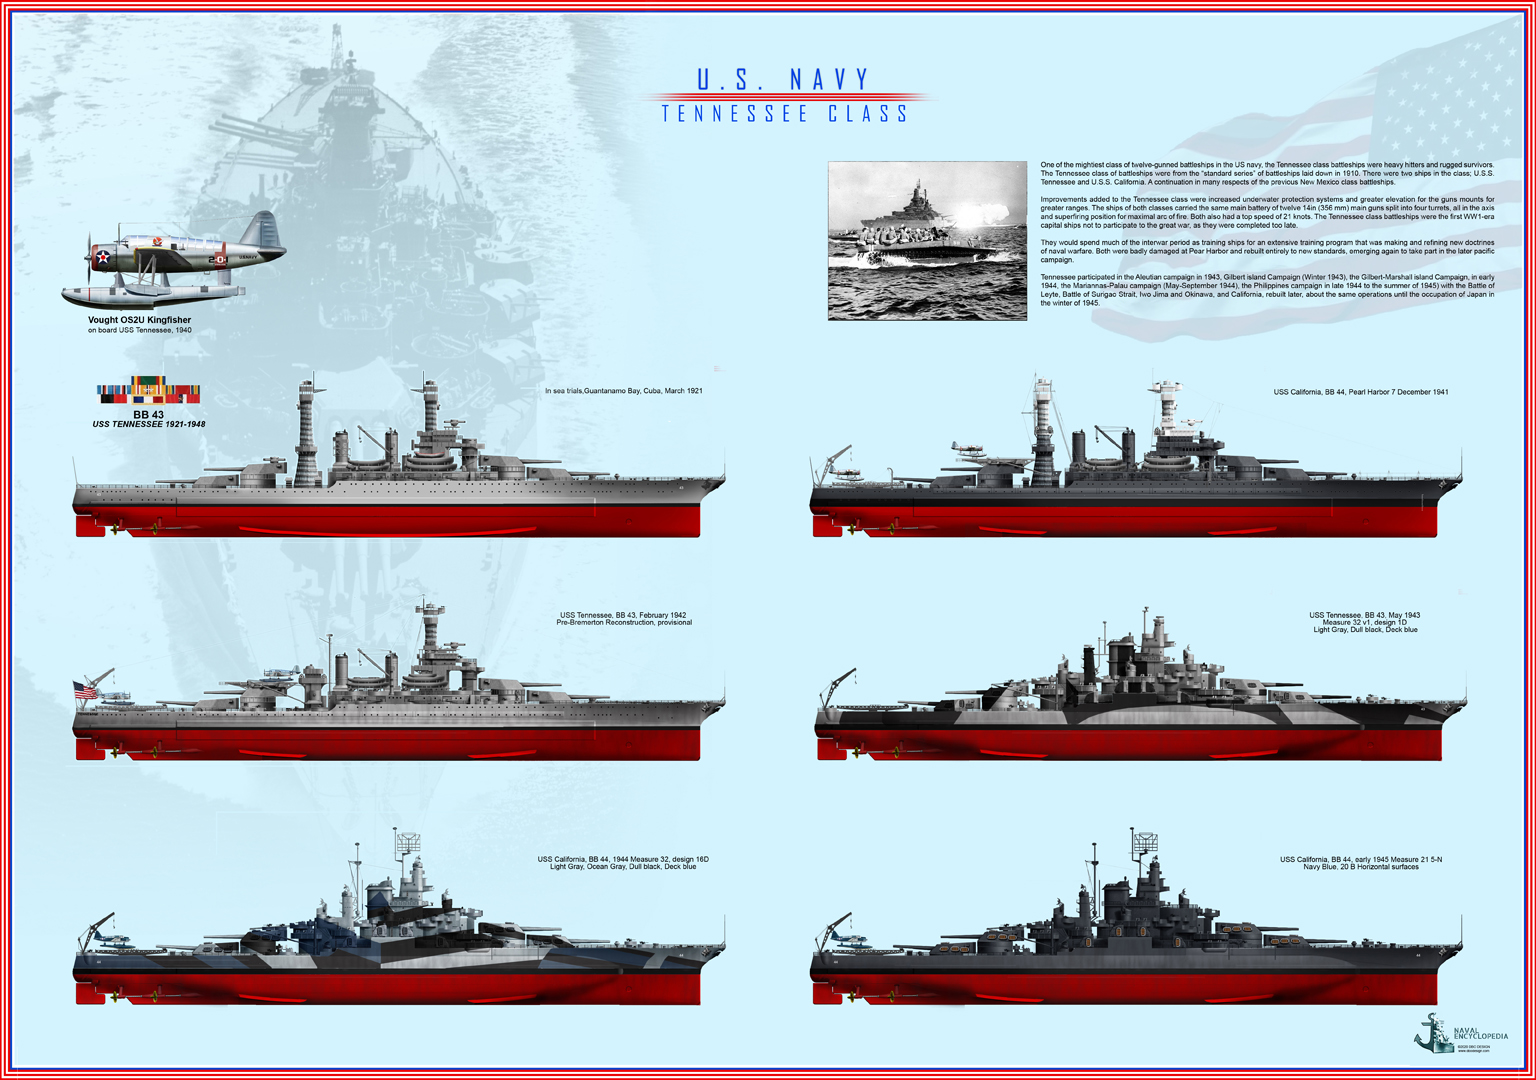 The Tennessee class battleships, evolution and camouflage